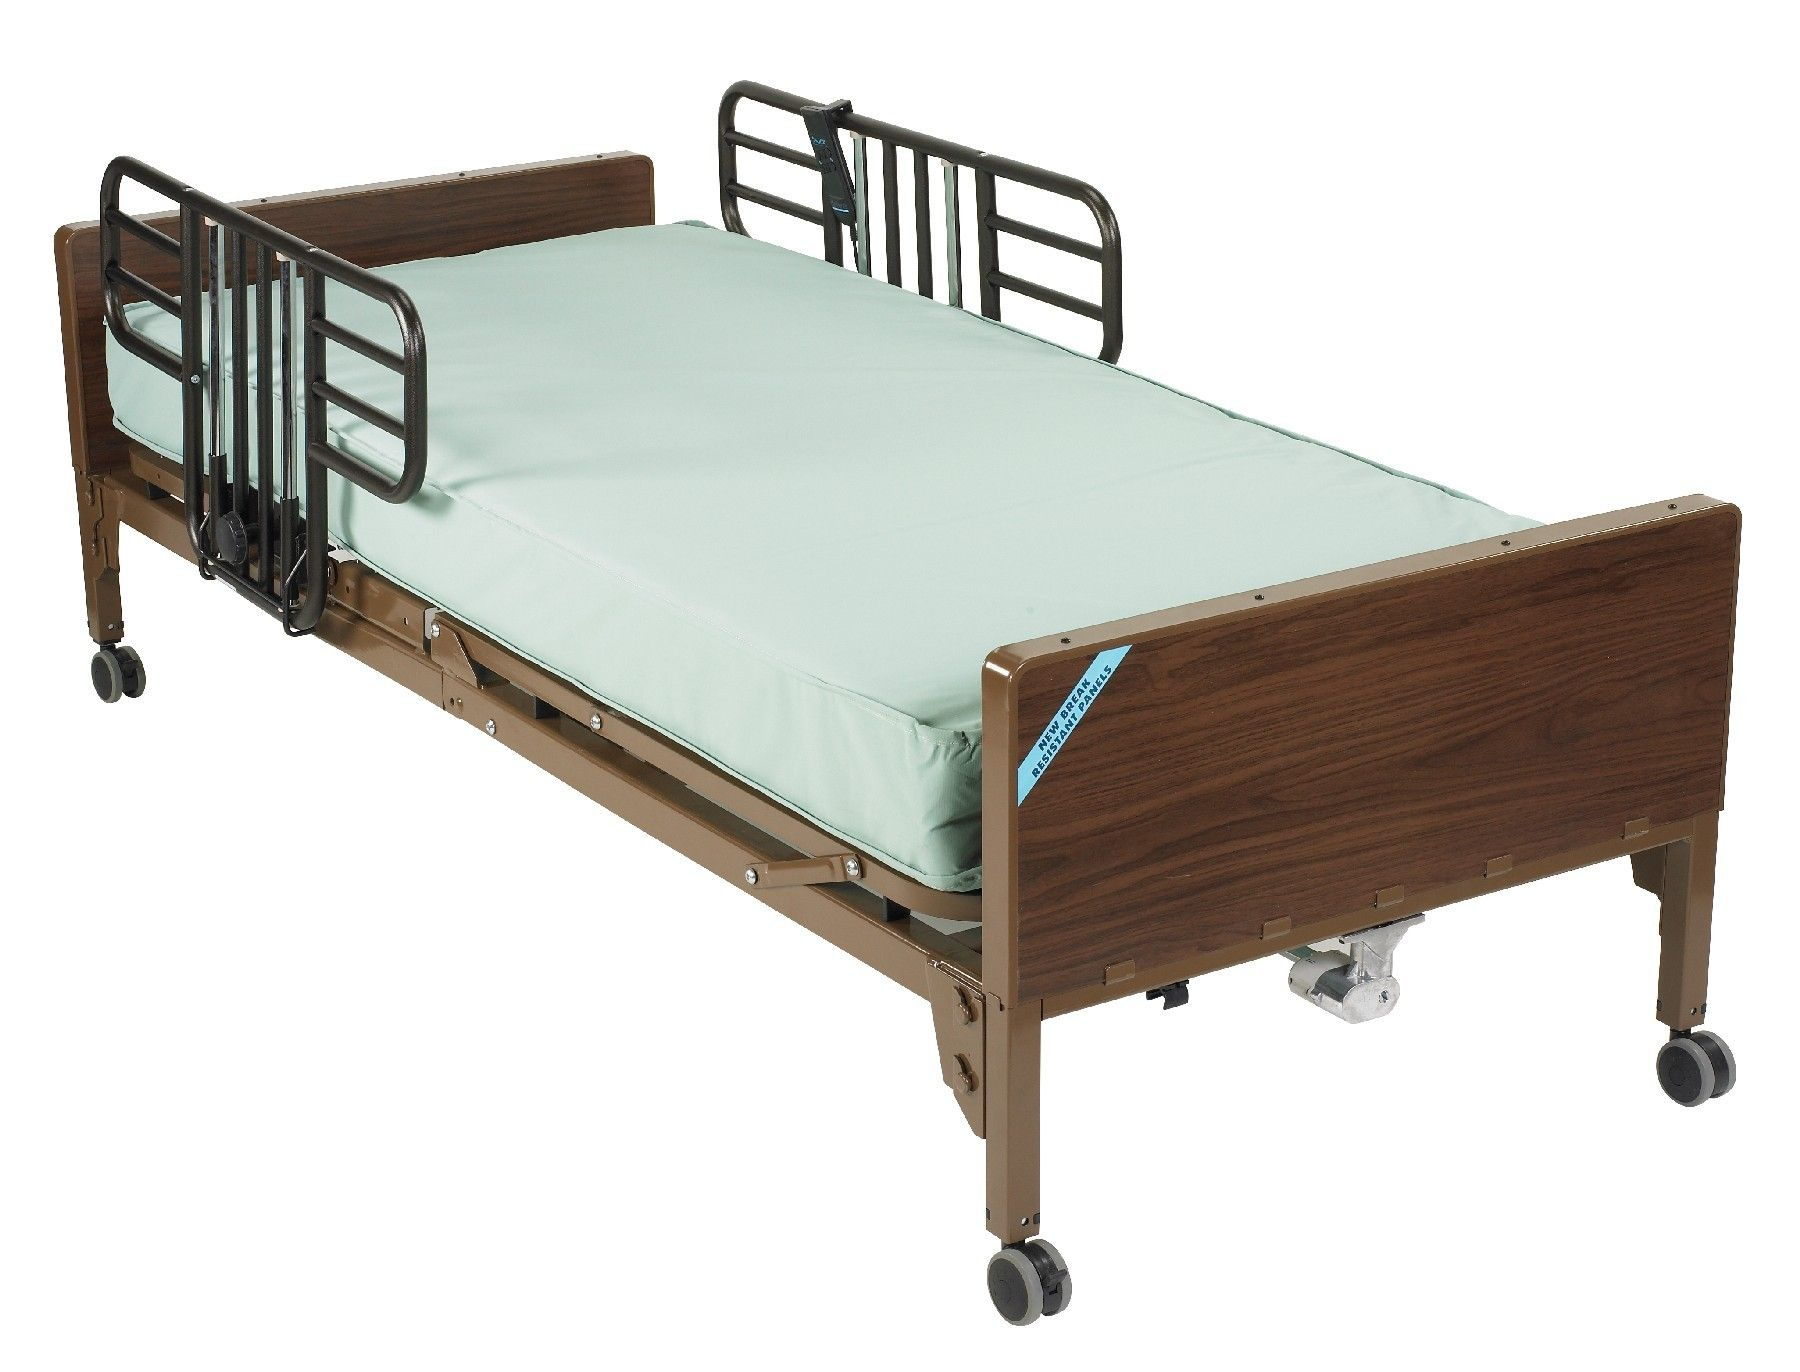 Delta Ultra Light Full Electric Hospital Bed with Half